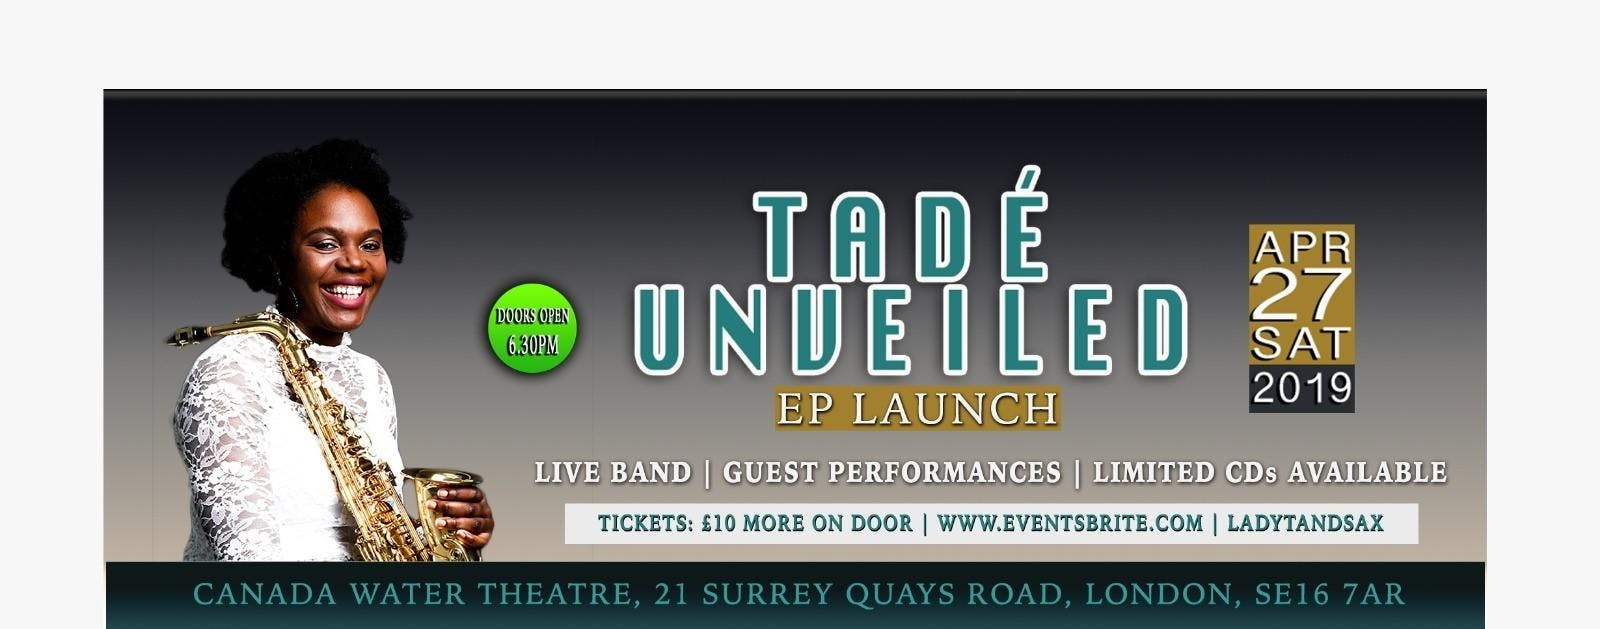 TADÉ UNVEILED (EP LAUNCH)